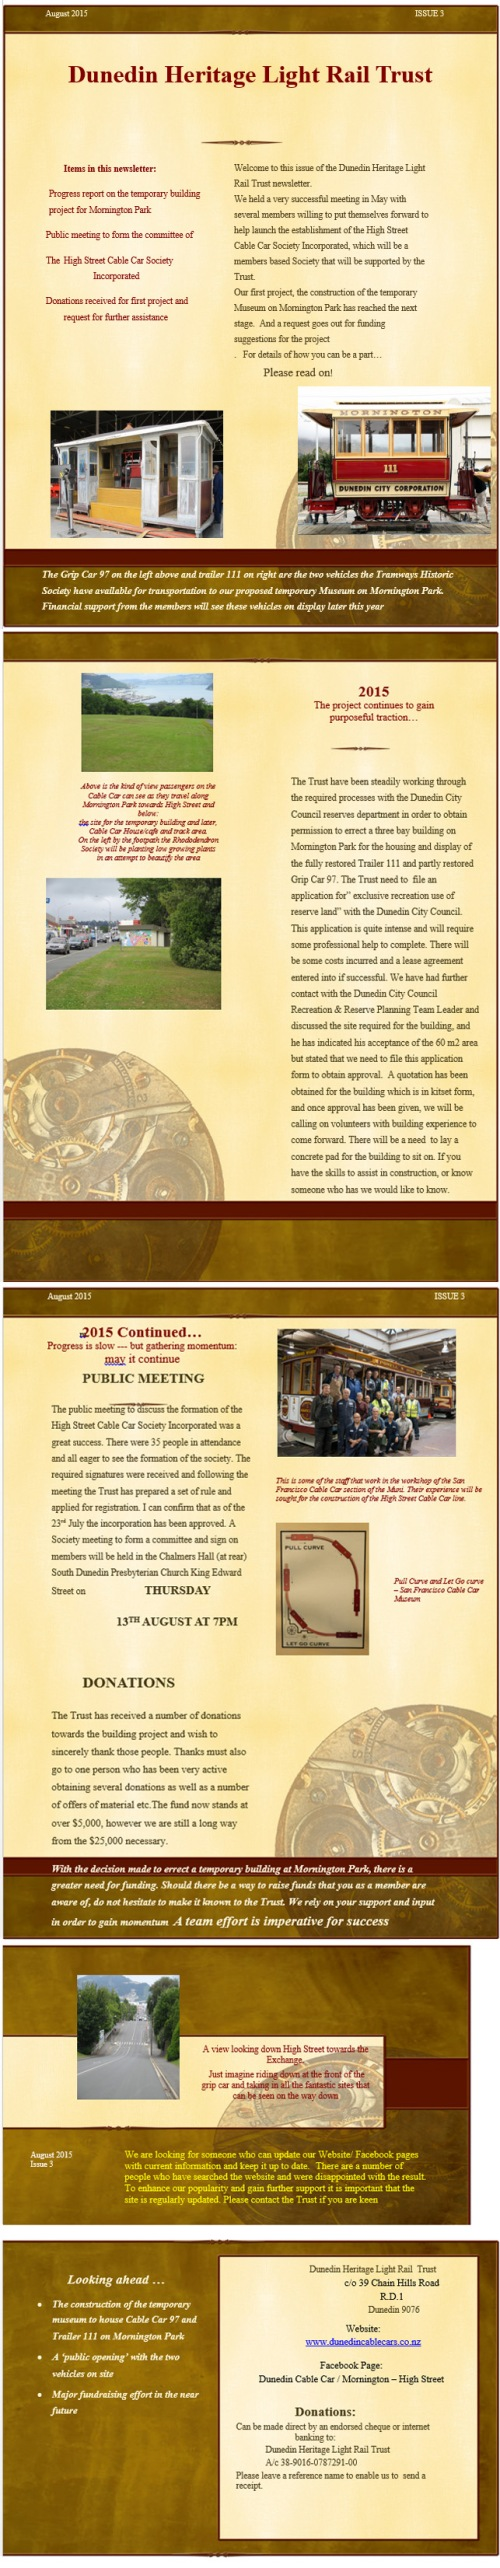 DHLRT Newsletter August 2015 Vol 1 Issue 3